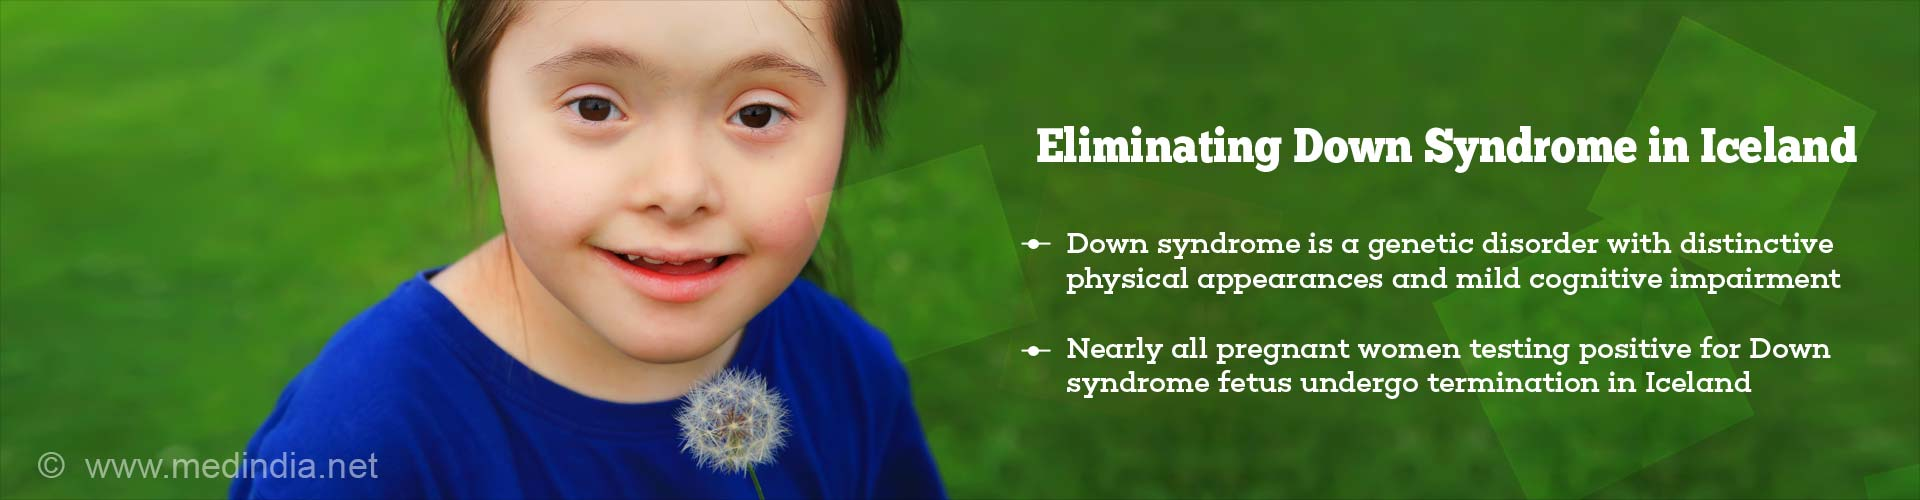 Eliminating Down Syndrome in Iceland - Down syndrome is a genetic disorder with distinctive physical appearance and mild cognitive impairment - Nearly all pregnant women testing positive for Down syndrome fetus undergo termination in Iceland